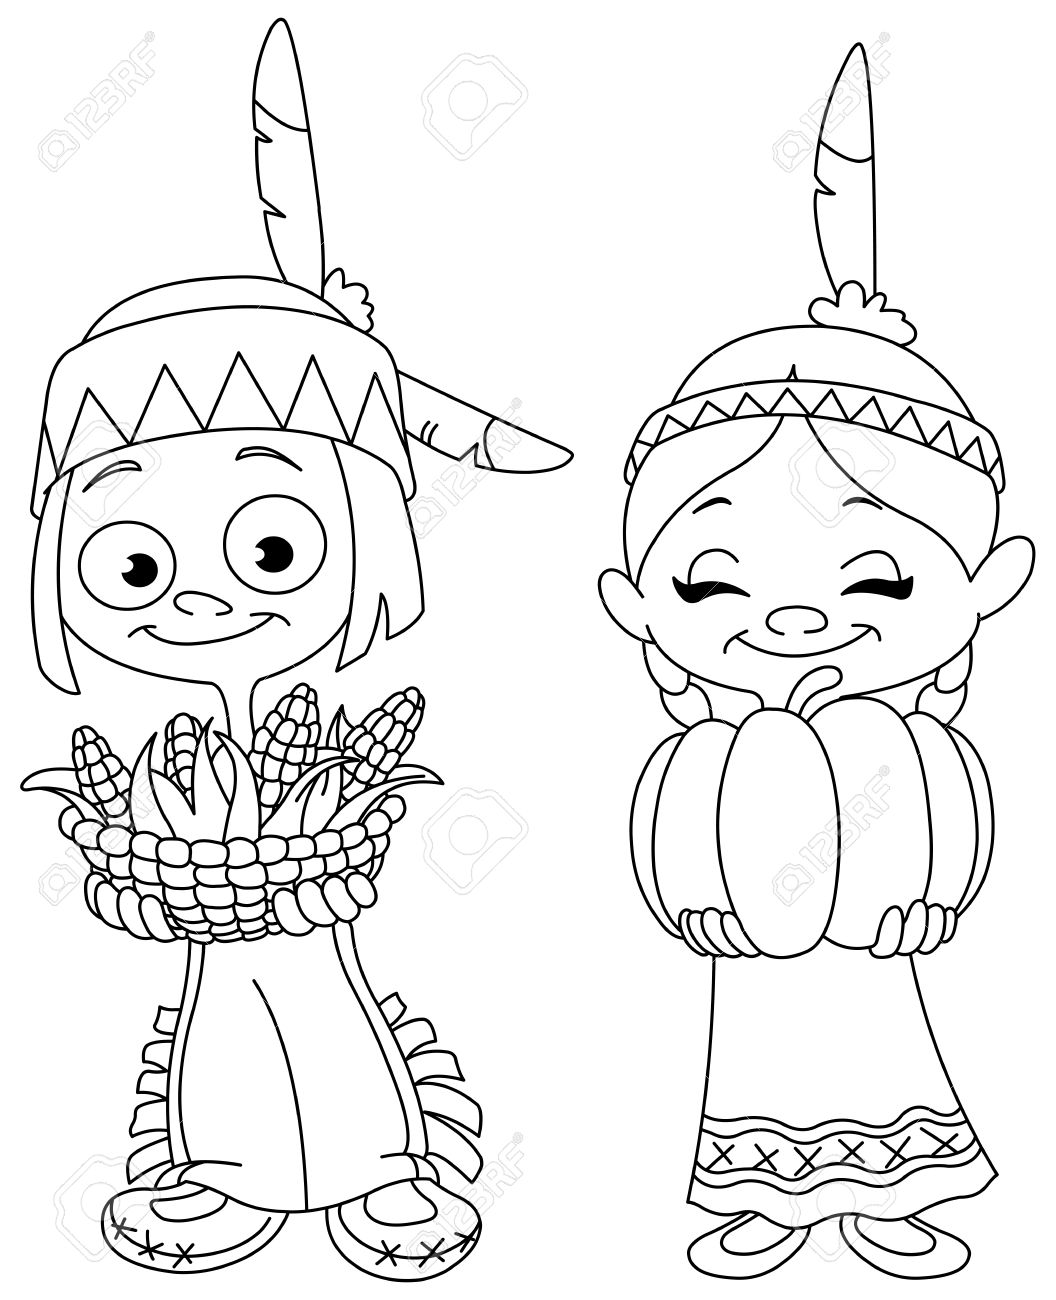 Thanksgiving Indian Coloring Page. | Thanksgiving coloring pages ... | 1300x1056